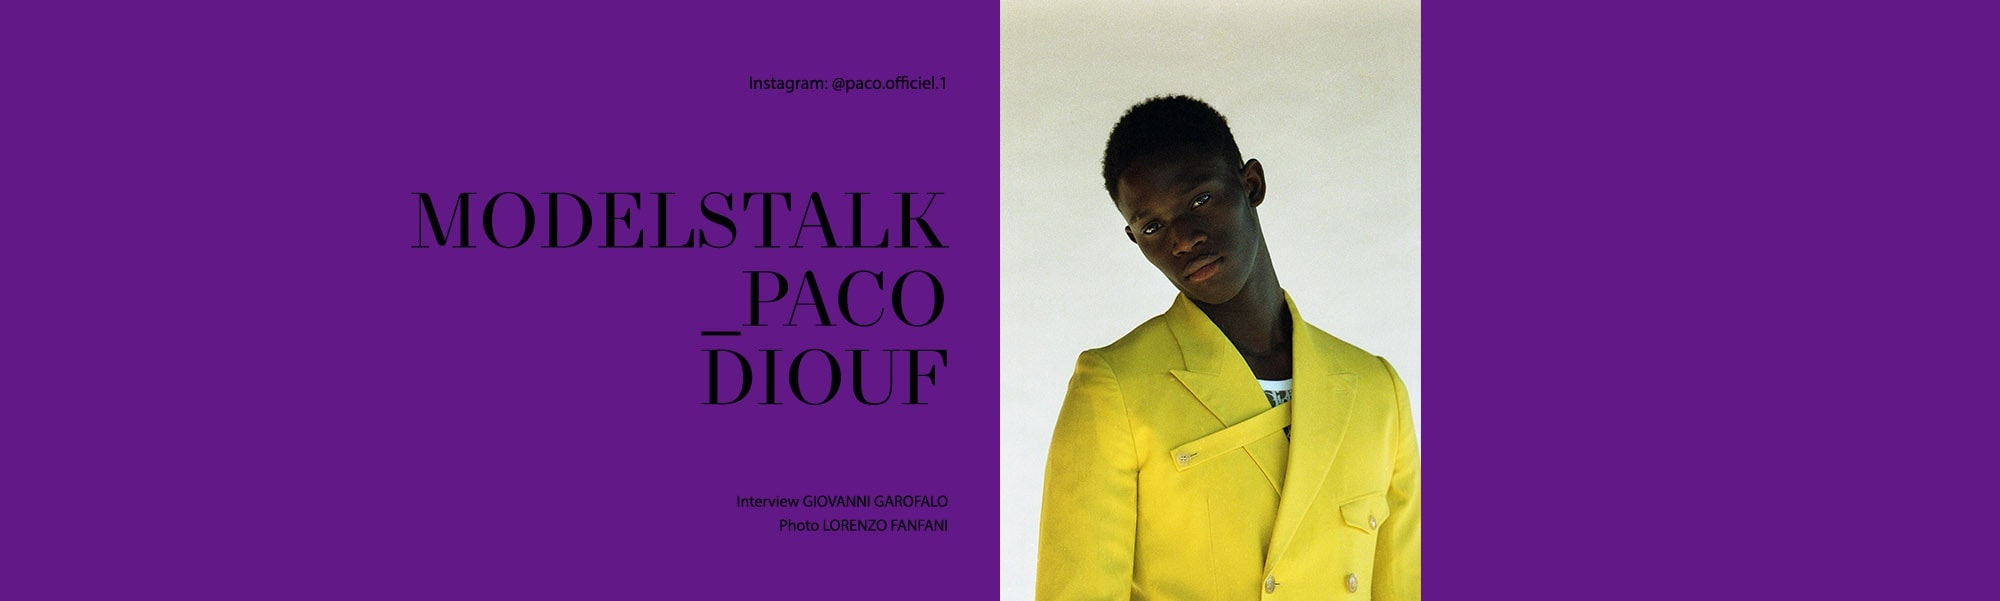 paco-diouf-main-banner-thegreatestmagazine-talking-heads